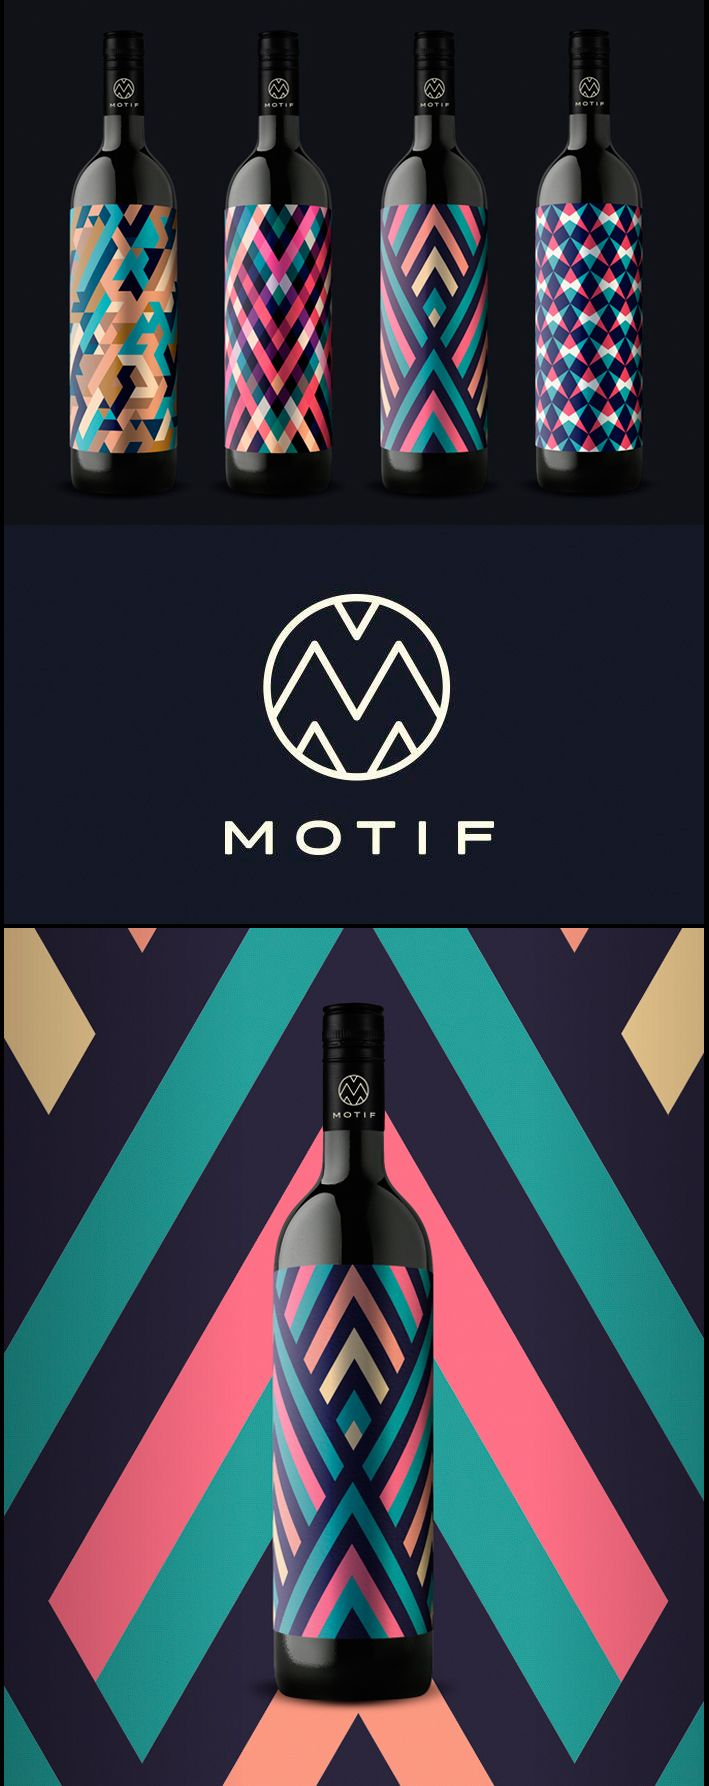 Motif wine packaging. Wonder if it tastes as great as it looks.